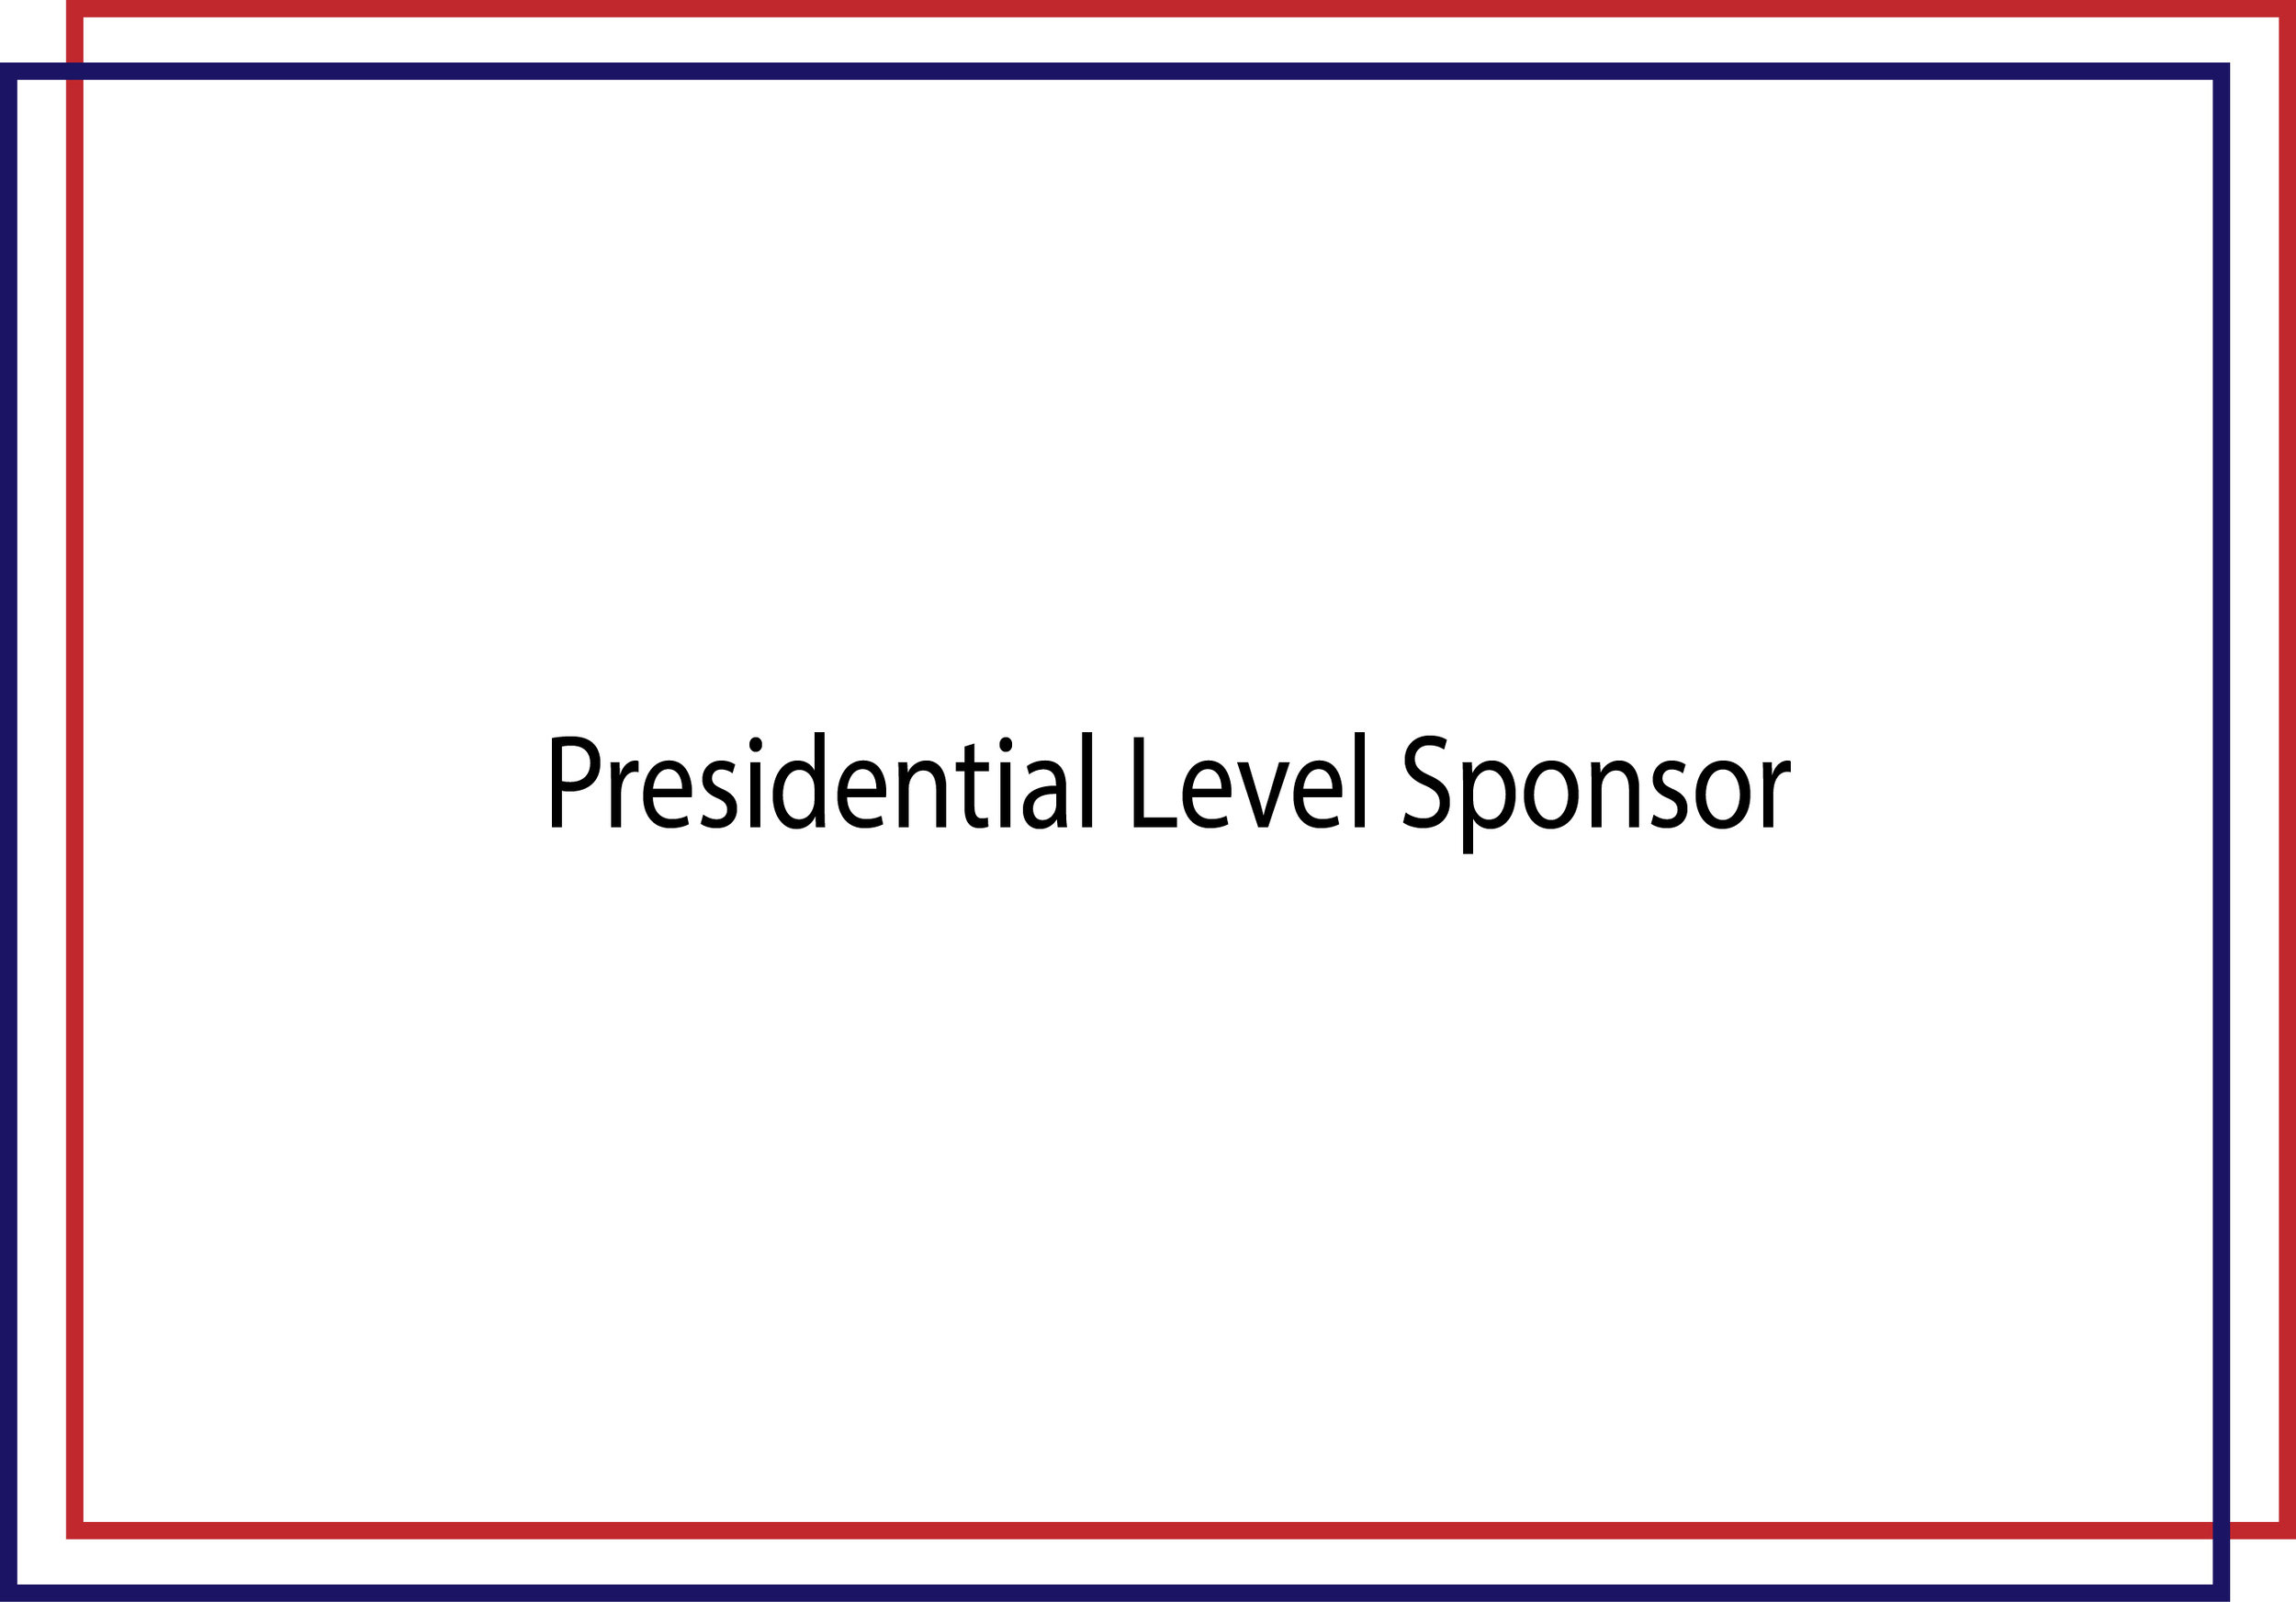 $100,000 USD Presidential Sponsor will receive: • Verbal recognition as Presidential Scholar at all Summit events • Opportunity to make short opening remarks (5 minutes maximum) at the Opening or Closing Dinner • A table of 10 seats in a preferred location at both the Opening and Closing Summit Dinners (a great opportunity to invite clients, colleagues and friends!) • 10 general Summit Registrations (a total of 10 seats for Closing Gala Dinner - see above) • Your company's 60-second video featured at the Opening or Closing Dinner • Your company logo featured on the Summit stage • Preferred seating at Summit luncheon and dinners • Listing as a Presidential Sponsor in Summit materials, including the Summit website, printed program, and press releases • Your logo featured on the Summit website linking to your corporate website